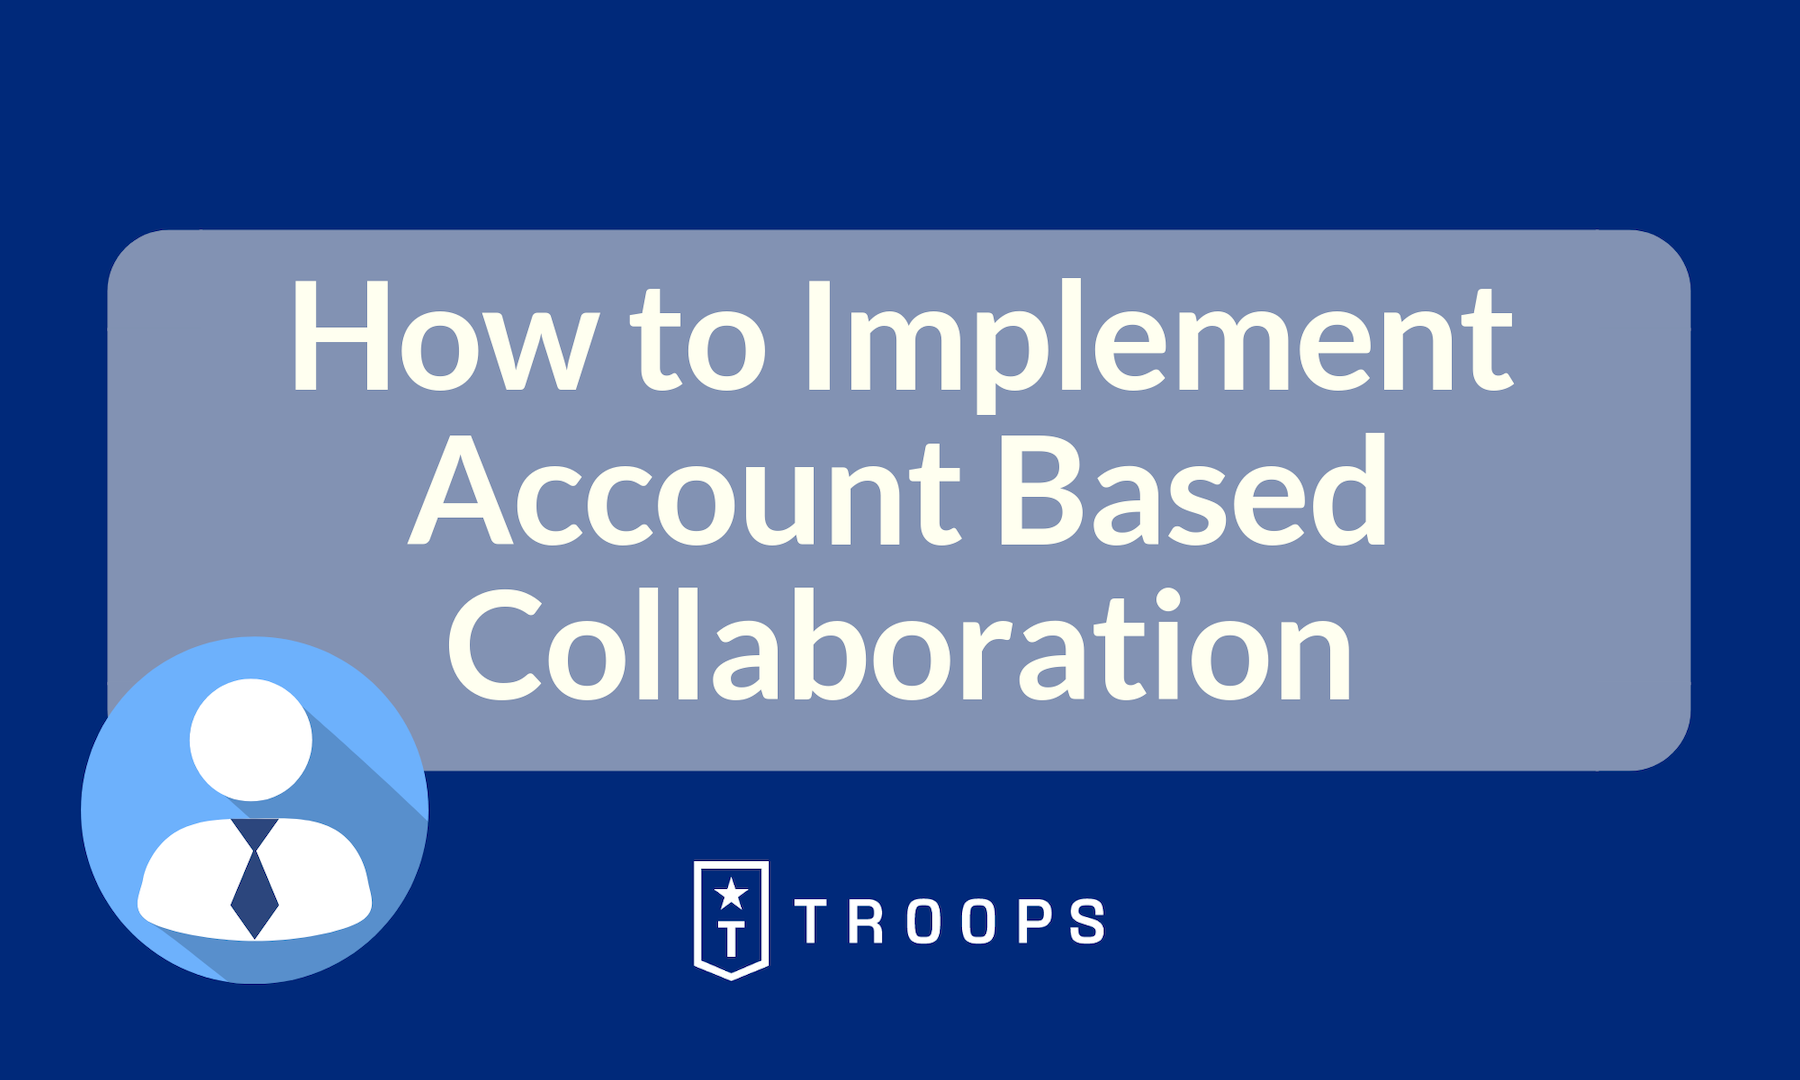 How to Implement Account Based Collaboration